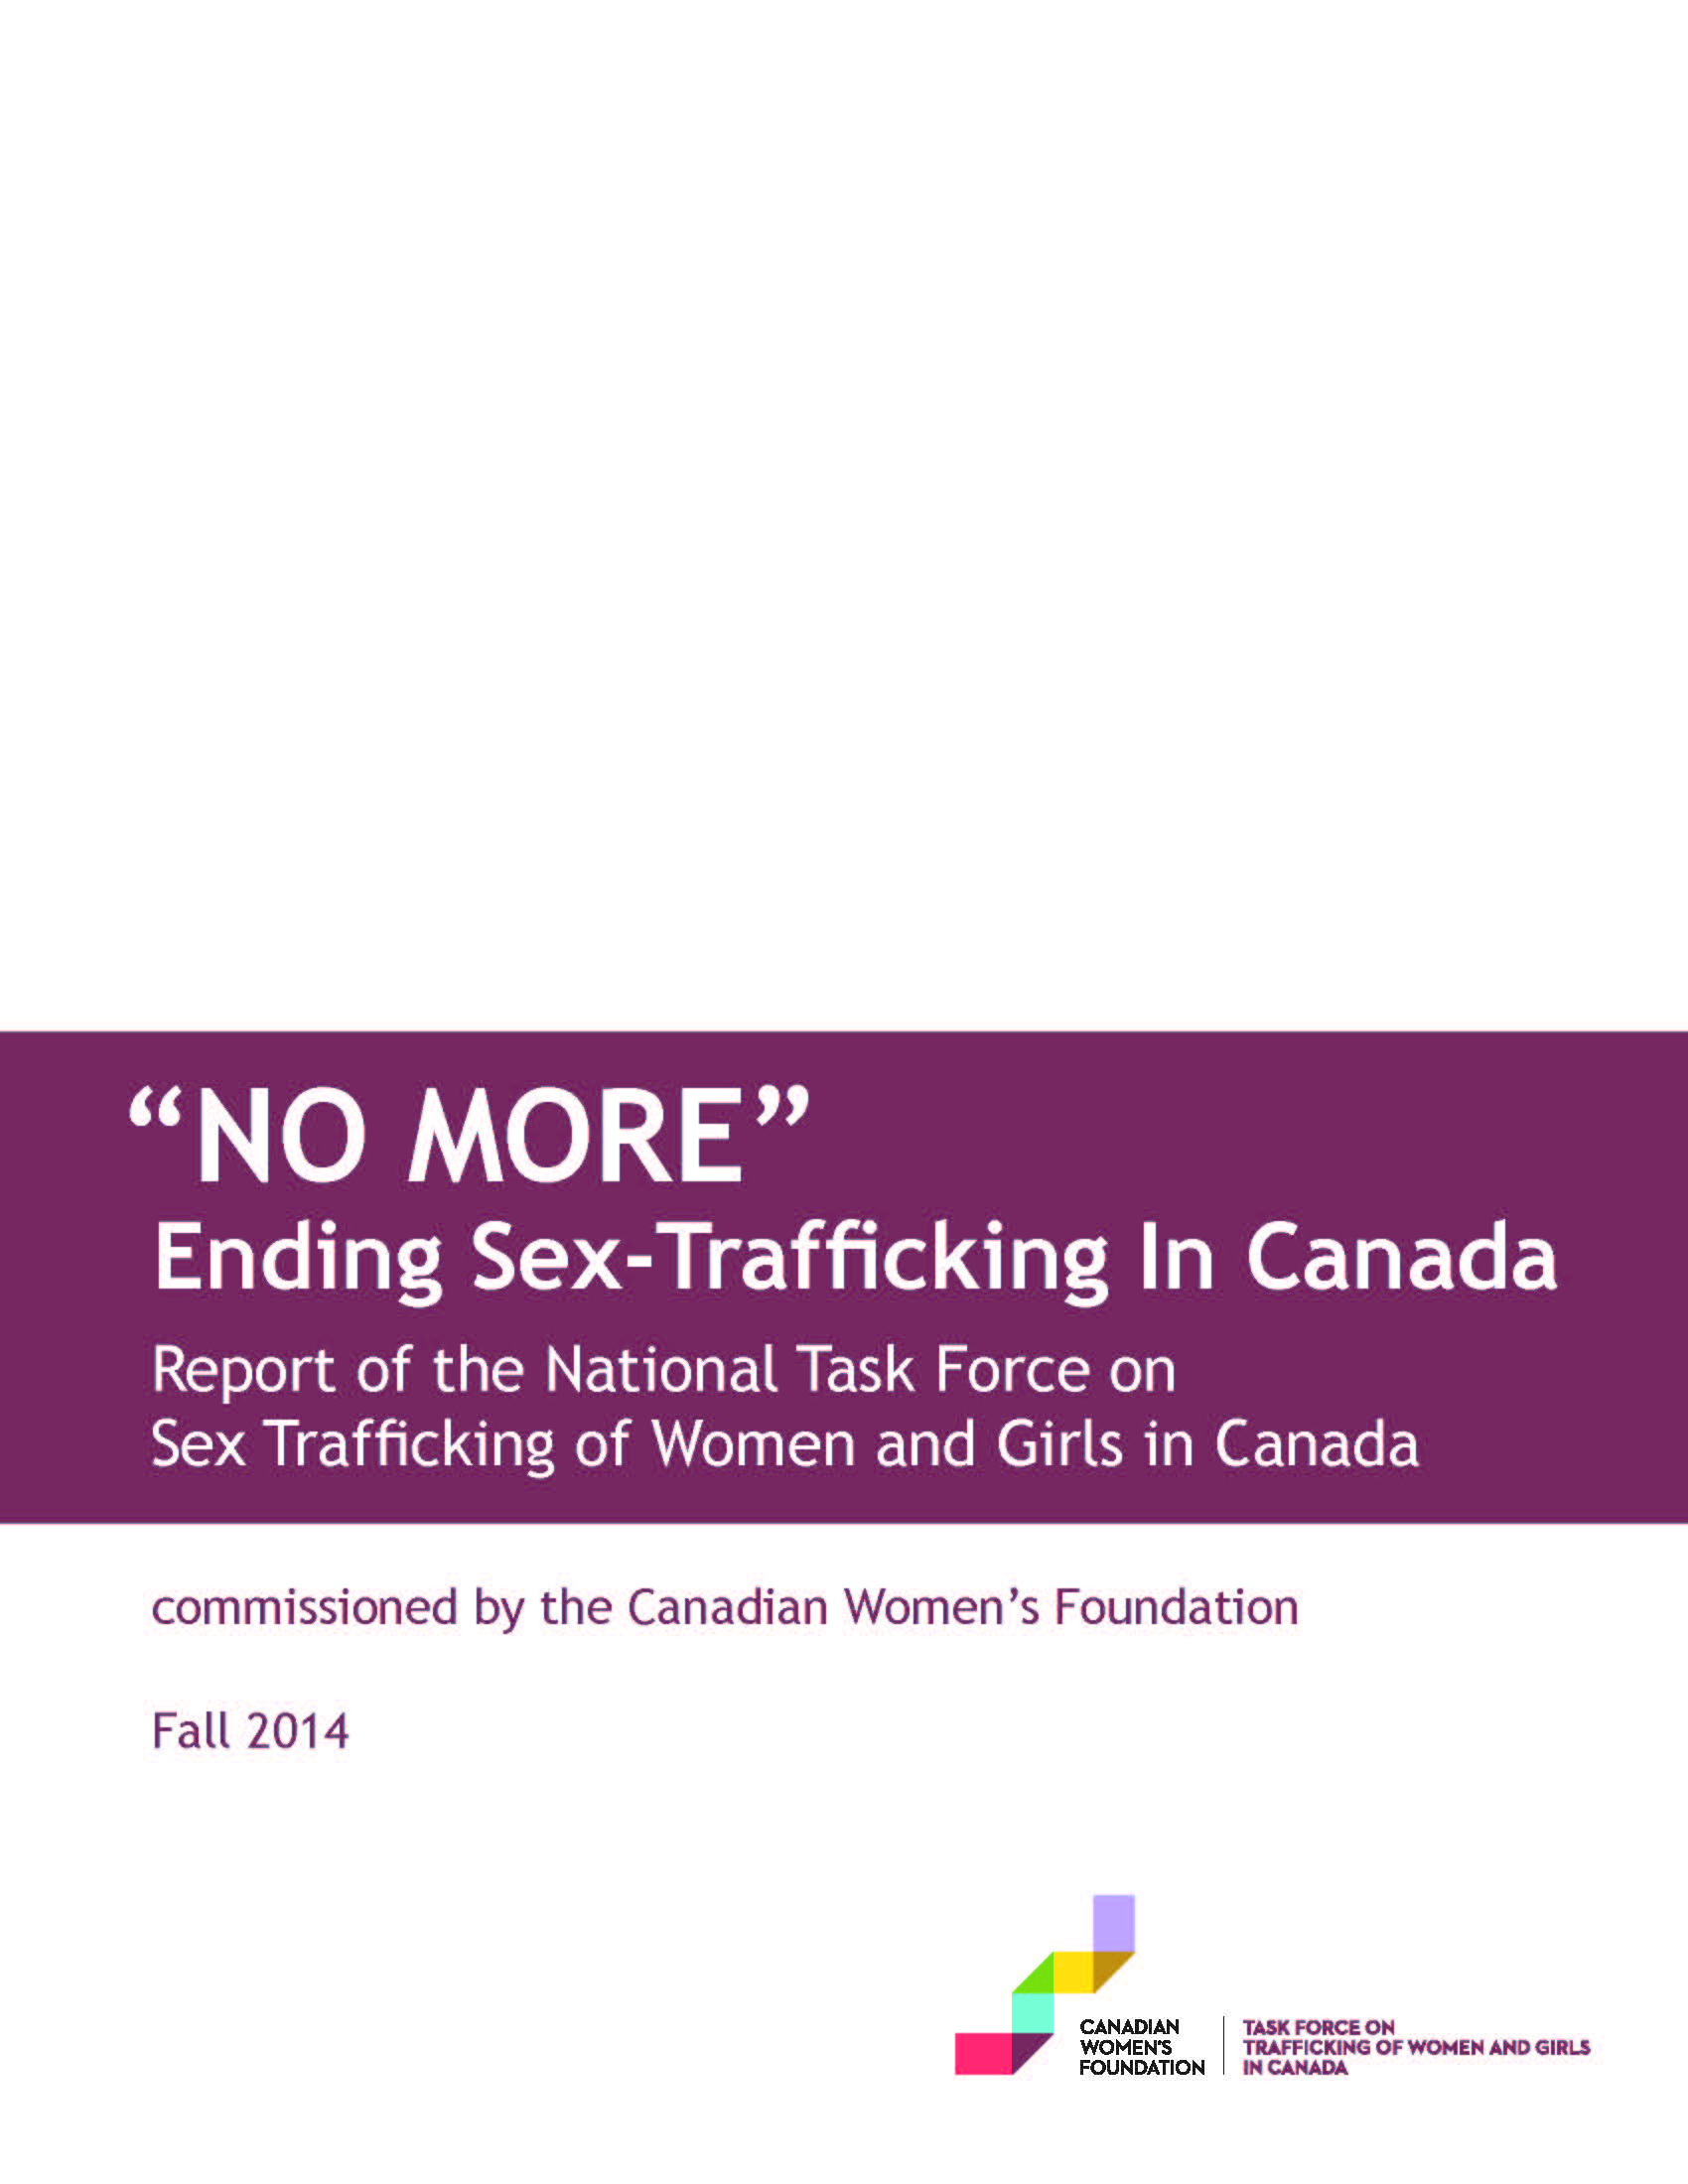 Report of the National Task Force on Sex Trafficking of Women and Girls in Canada, 2014